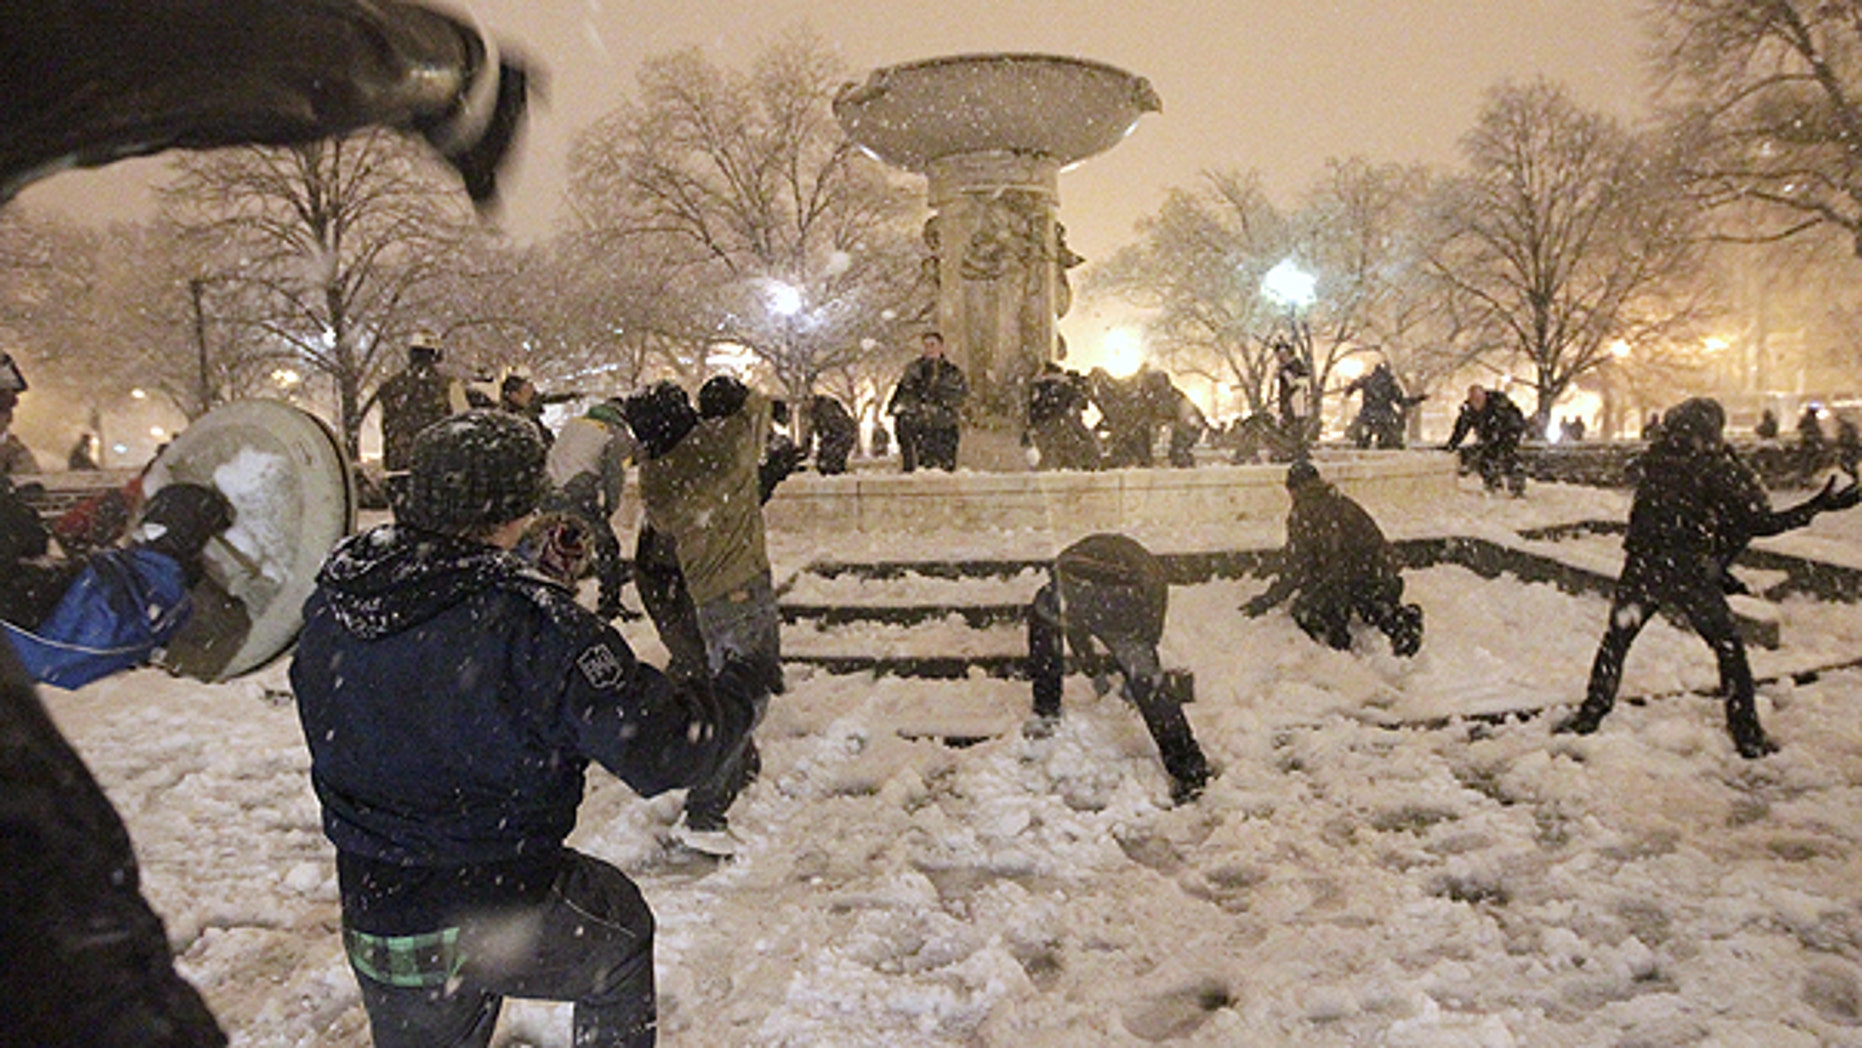 Jan. 26: A snowball fight breaks out at Dupont Circle in Washington in the still-falling snow.